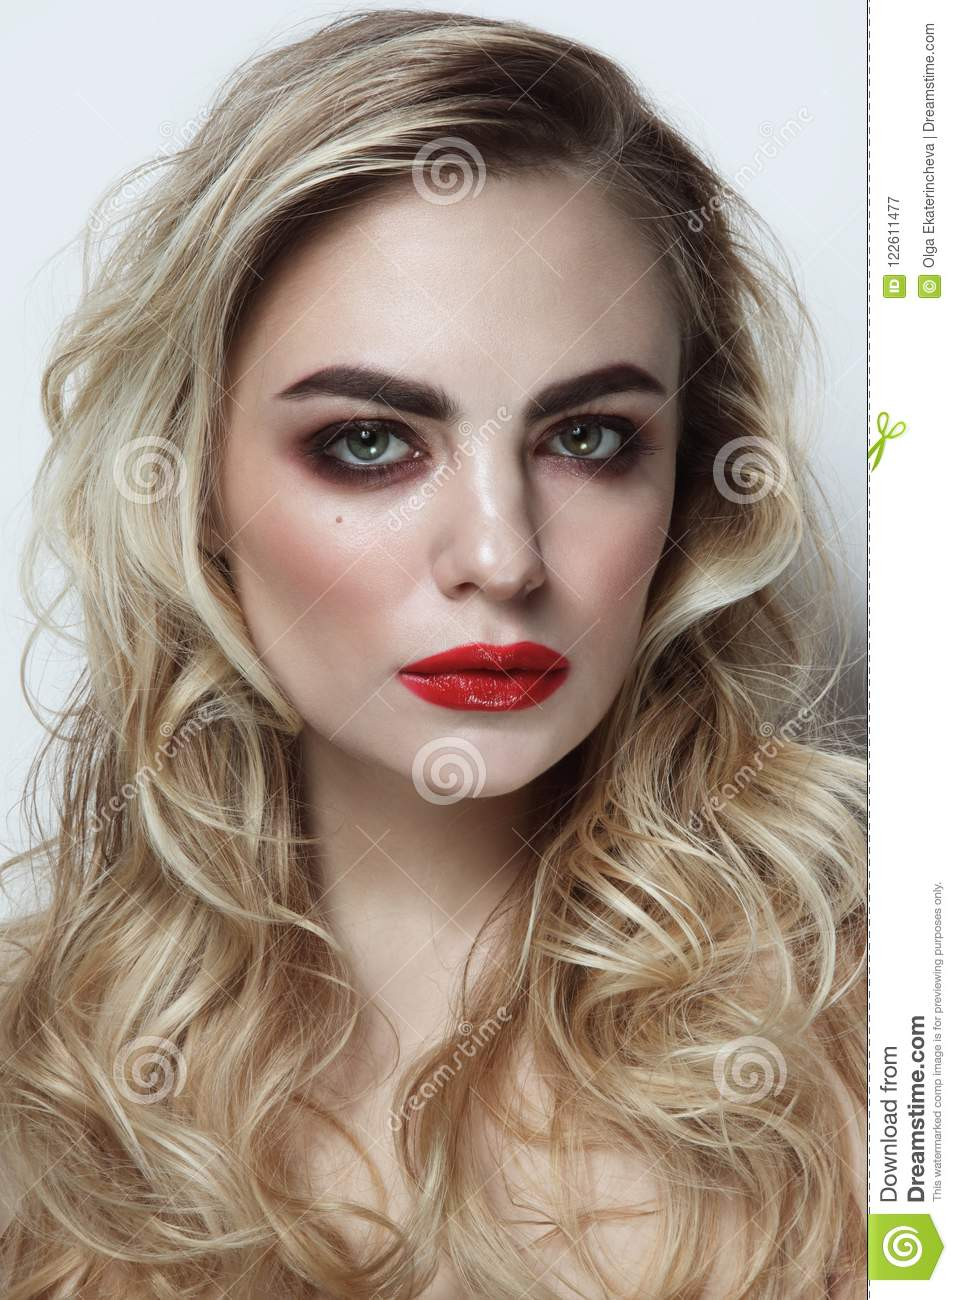 Rather girls with blonde curly hair